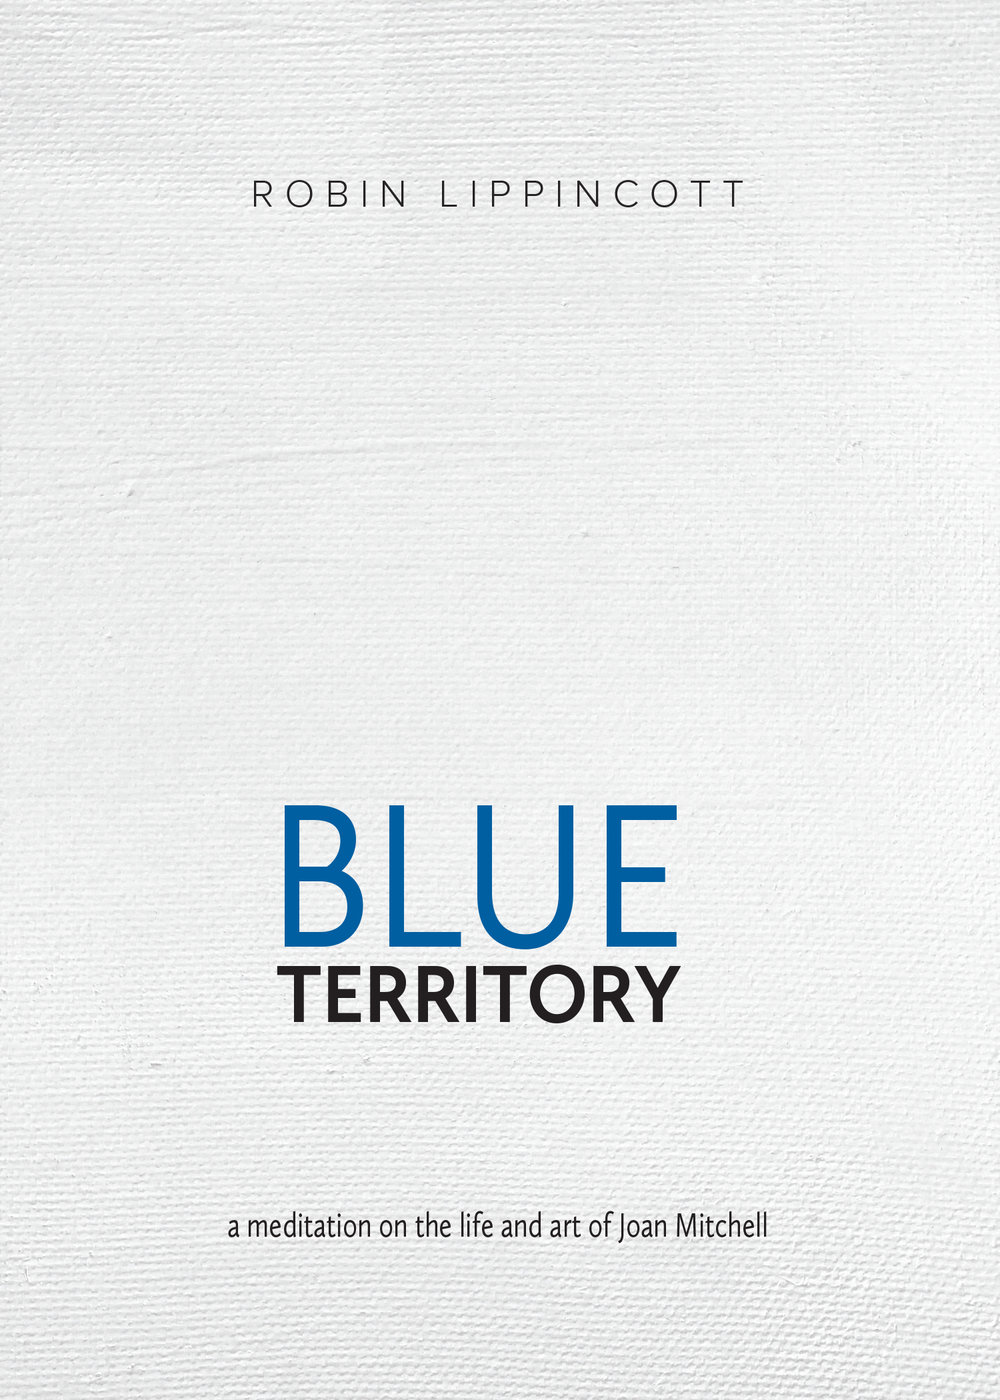 Blue Territory front cover.jpg